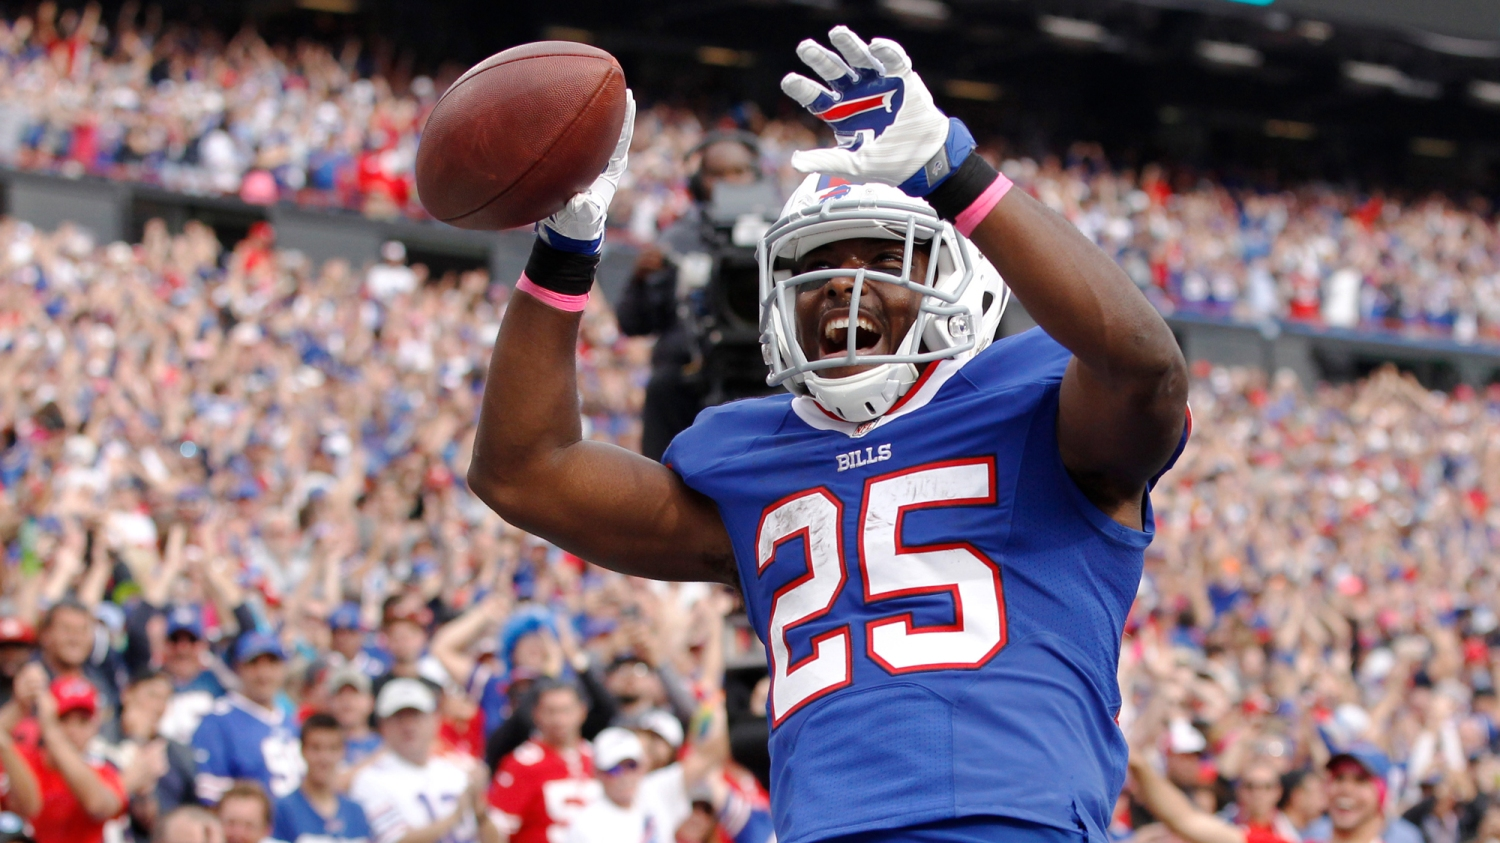 abcb6c3f2f3 The real LeSean McCoy is worried about making plays, not his hamstring